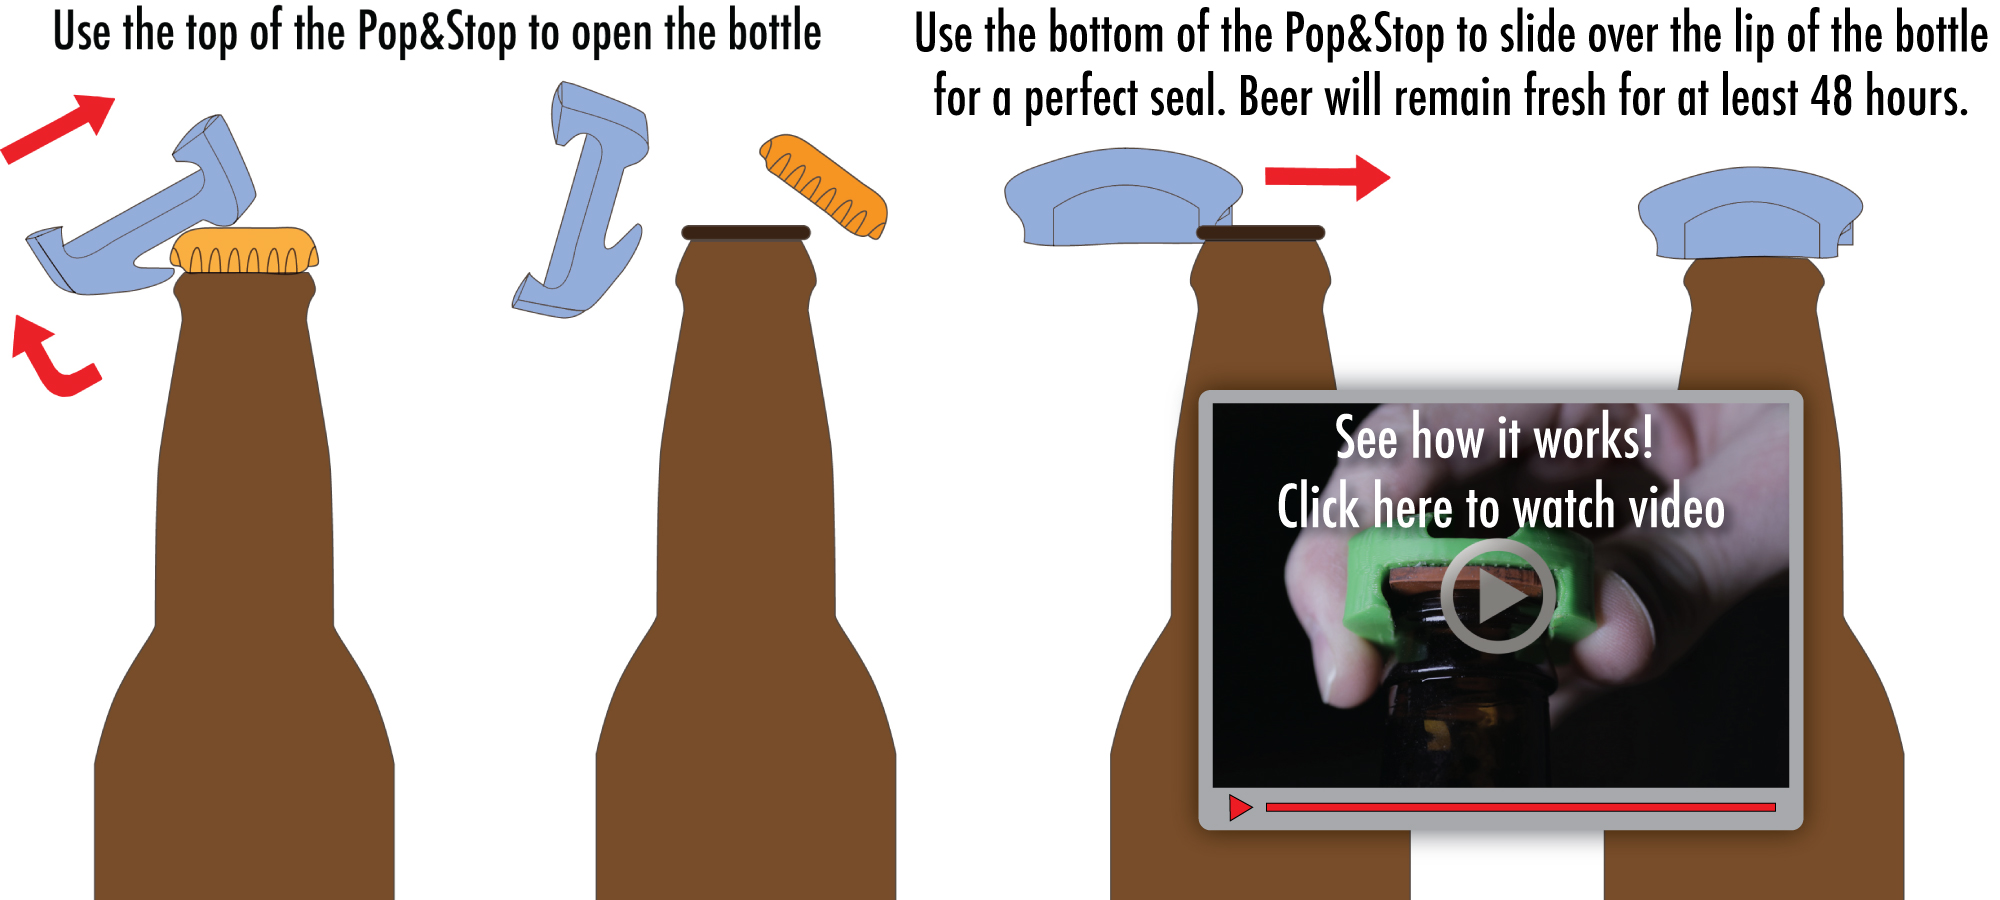 bottle-opening-instruction-graphic-with-video3